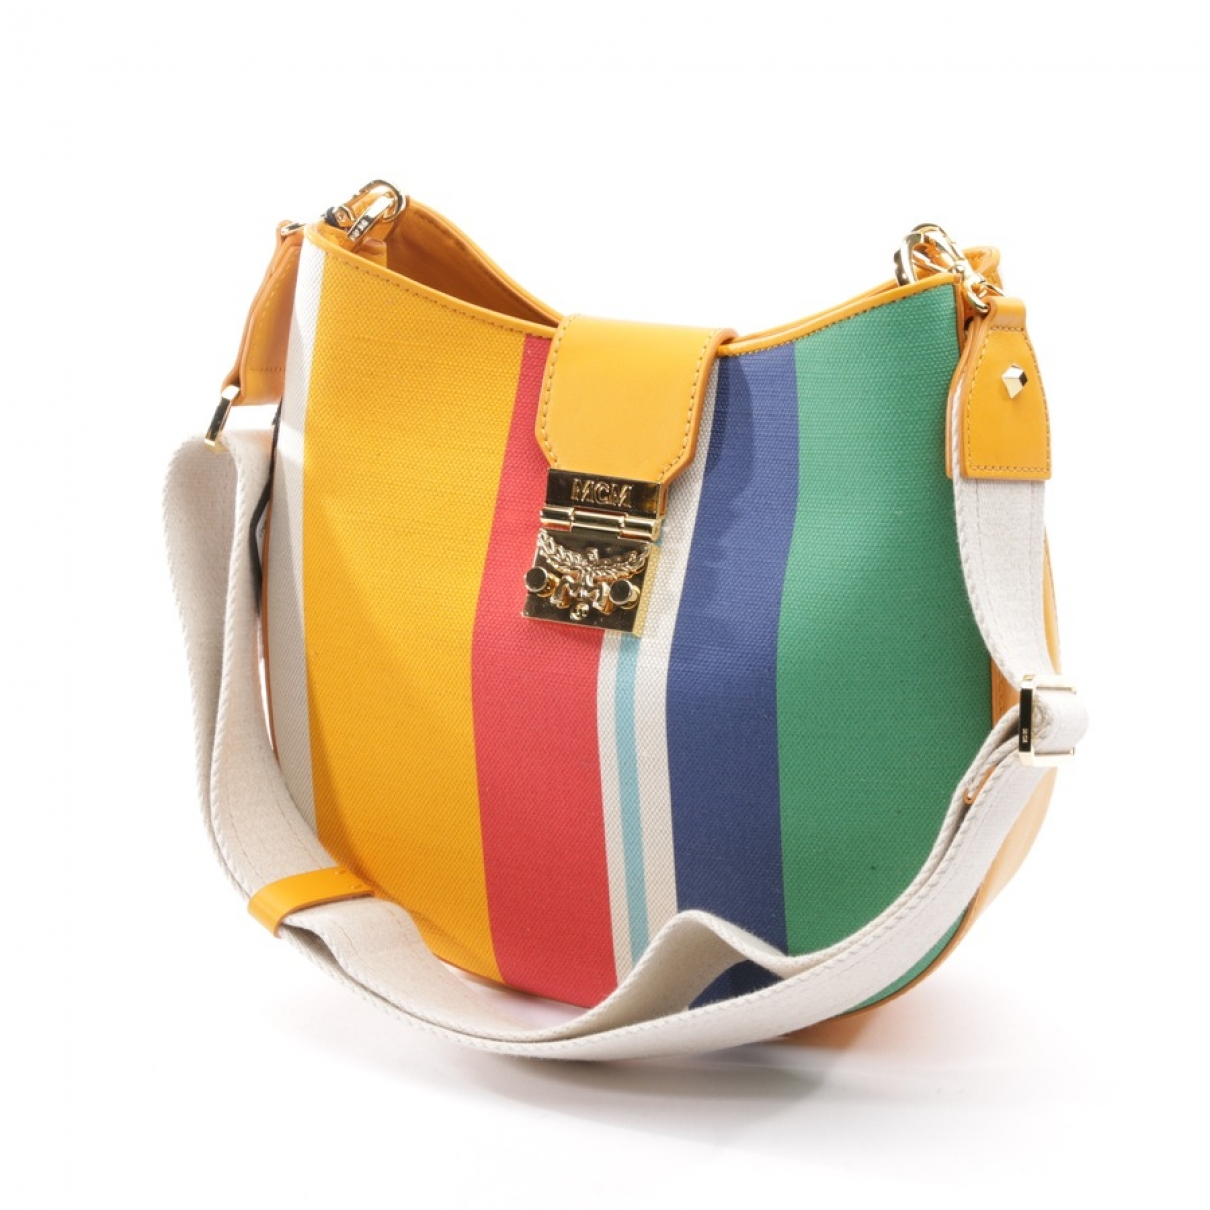 Mcm \N Multicolour Cloth handbag for Women \N